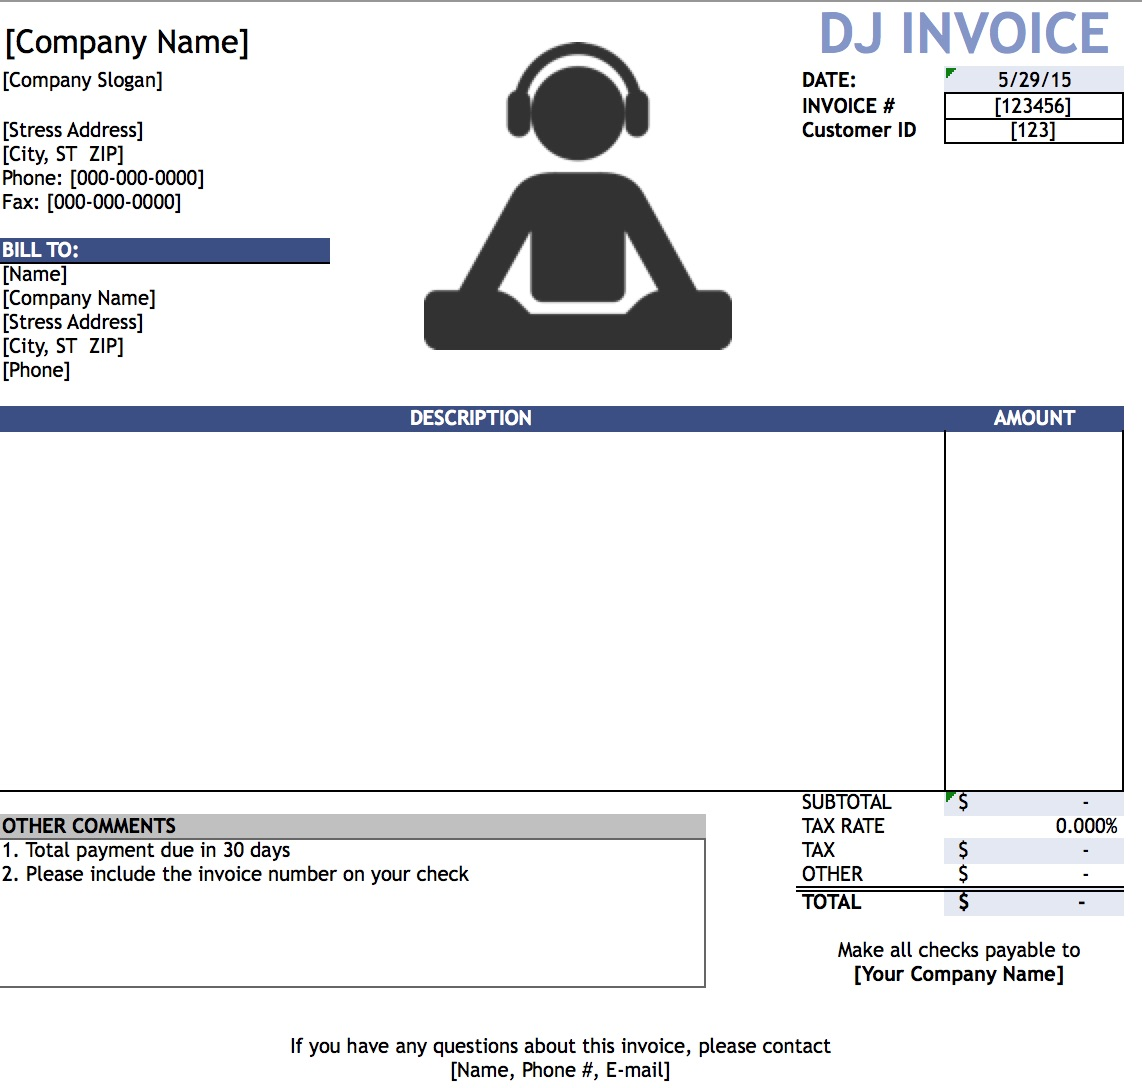 Free DJ Disc Jockey Invoice Template Excel PDF Word Doc - Free microsoft word invoice template for service business